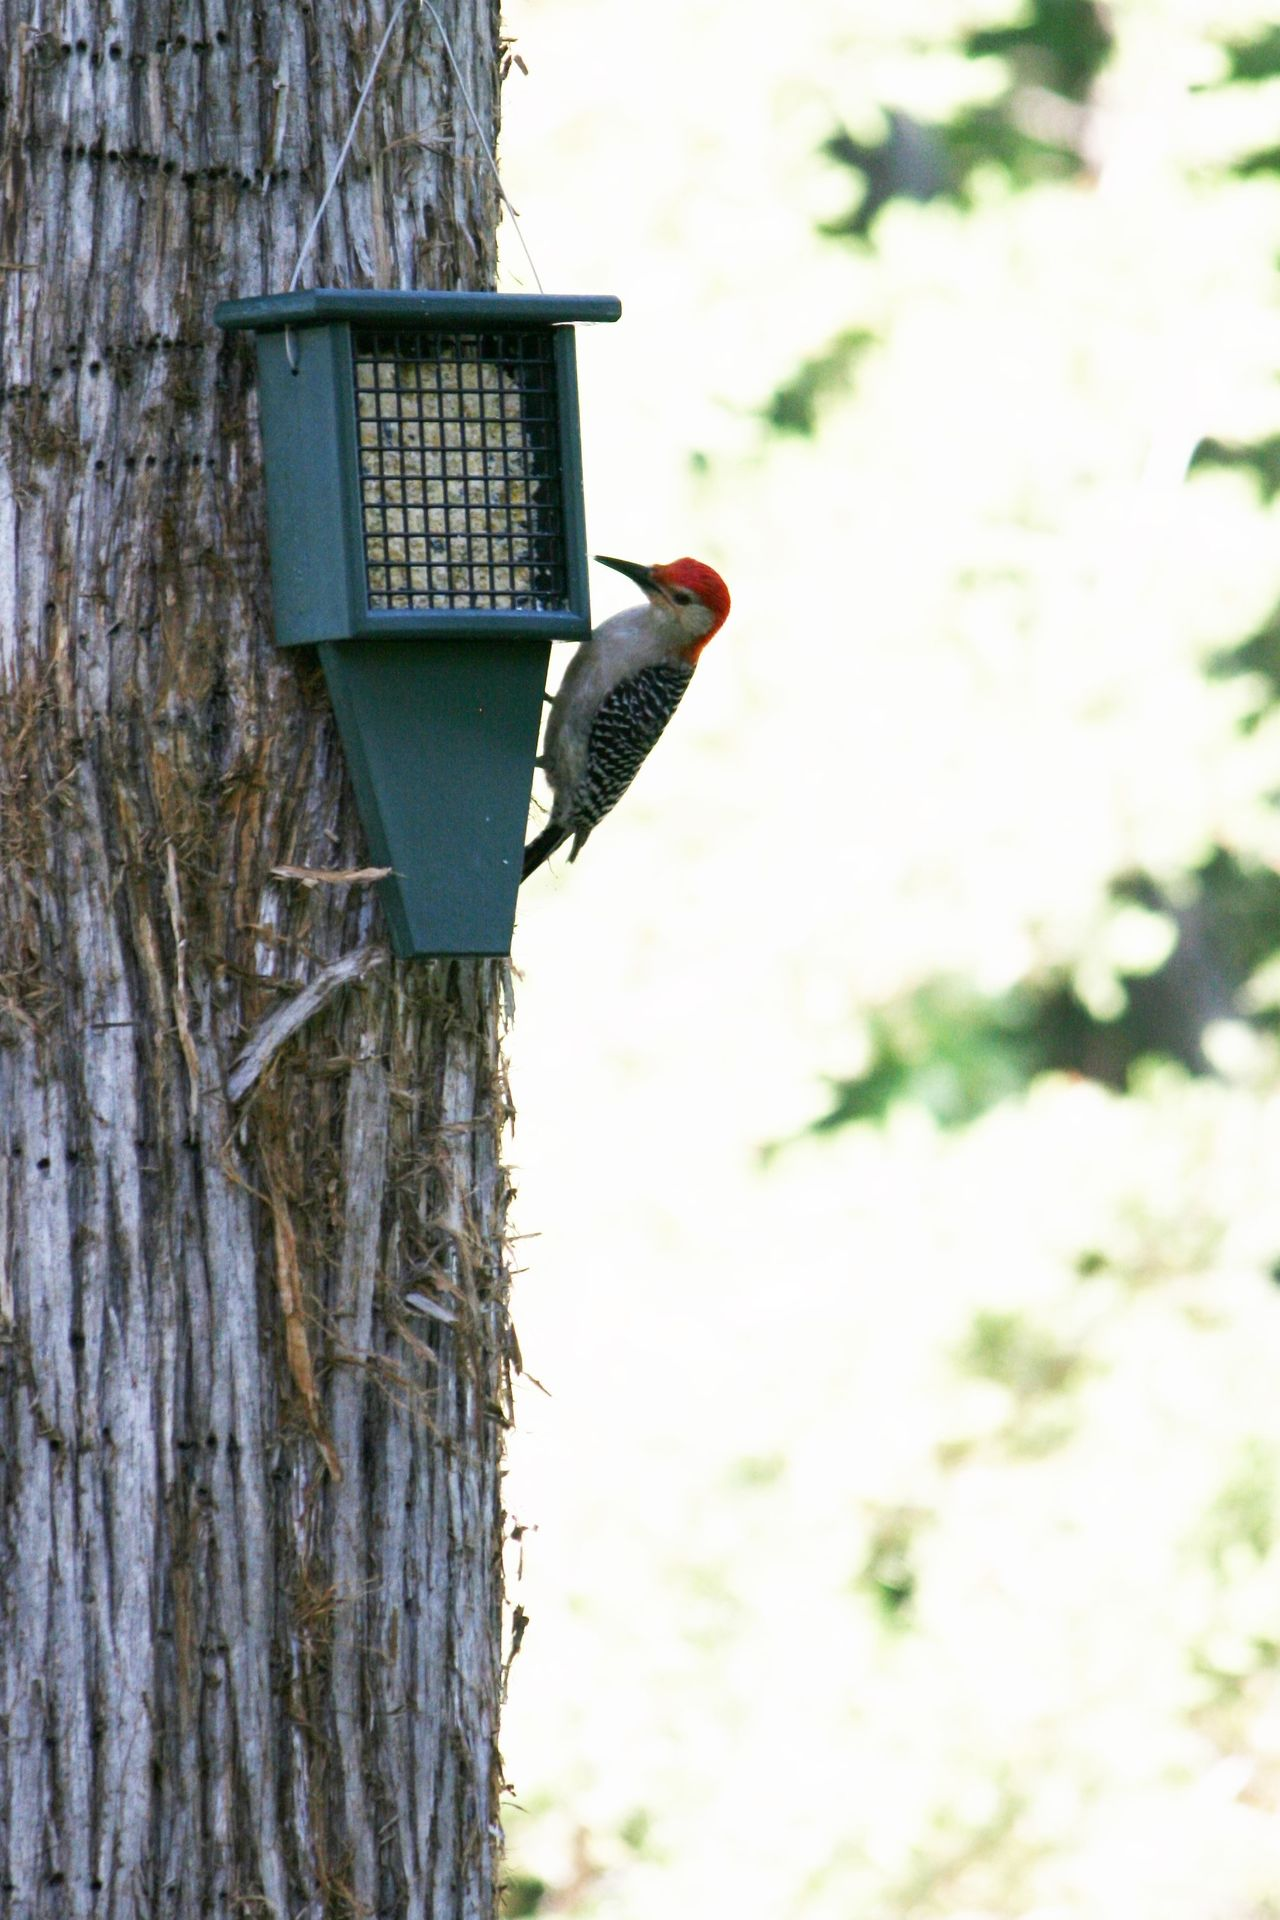 Animal Themes Animal Wildlife Animals In The Wild Bird Bird Feeder Bird Feeders Cedar Tree Close-up Day Focus On Foreground Low Angle View Nature No Filter No Edit No People One Animal Outdoors Perching Red Headed Woodpecker Suet Suet Feeder Tree Woodpecker